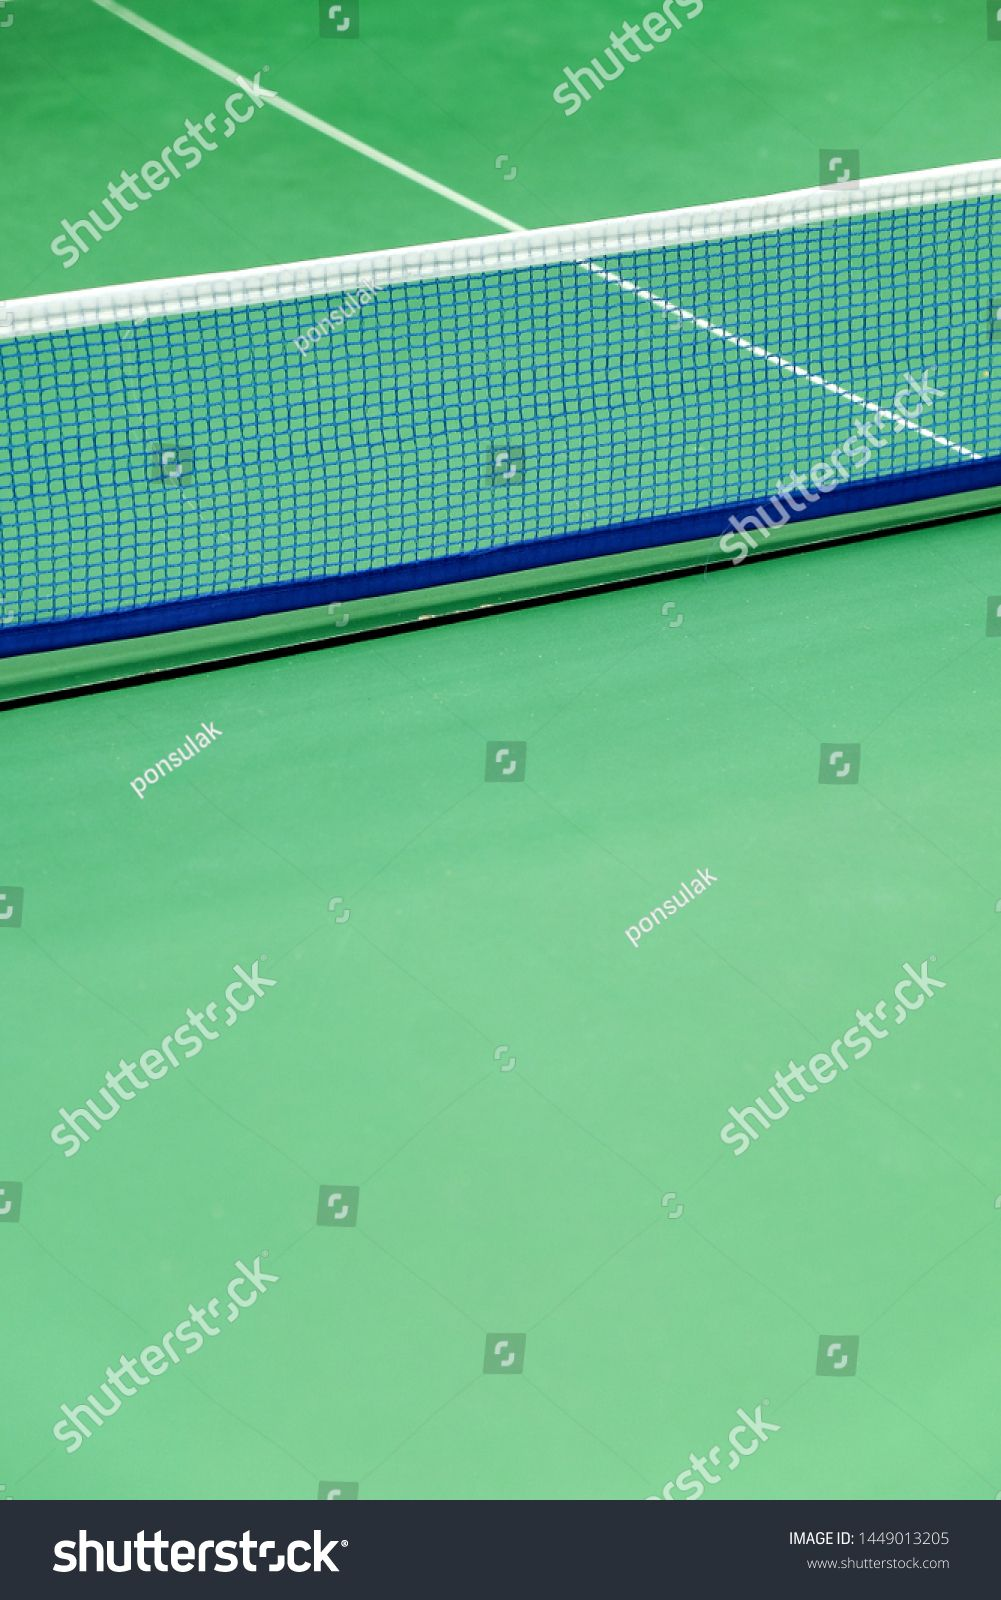 Net Of Tennis Court On Green Wall Background Ad Sponsored Court Tennis Net Background Tennis Court Tennis Nets Green Wall